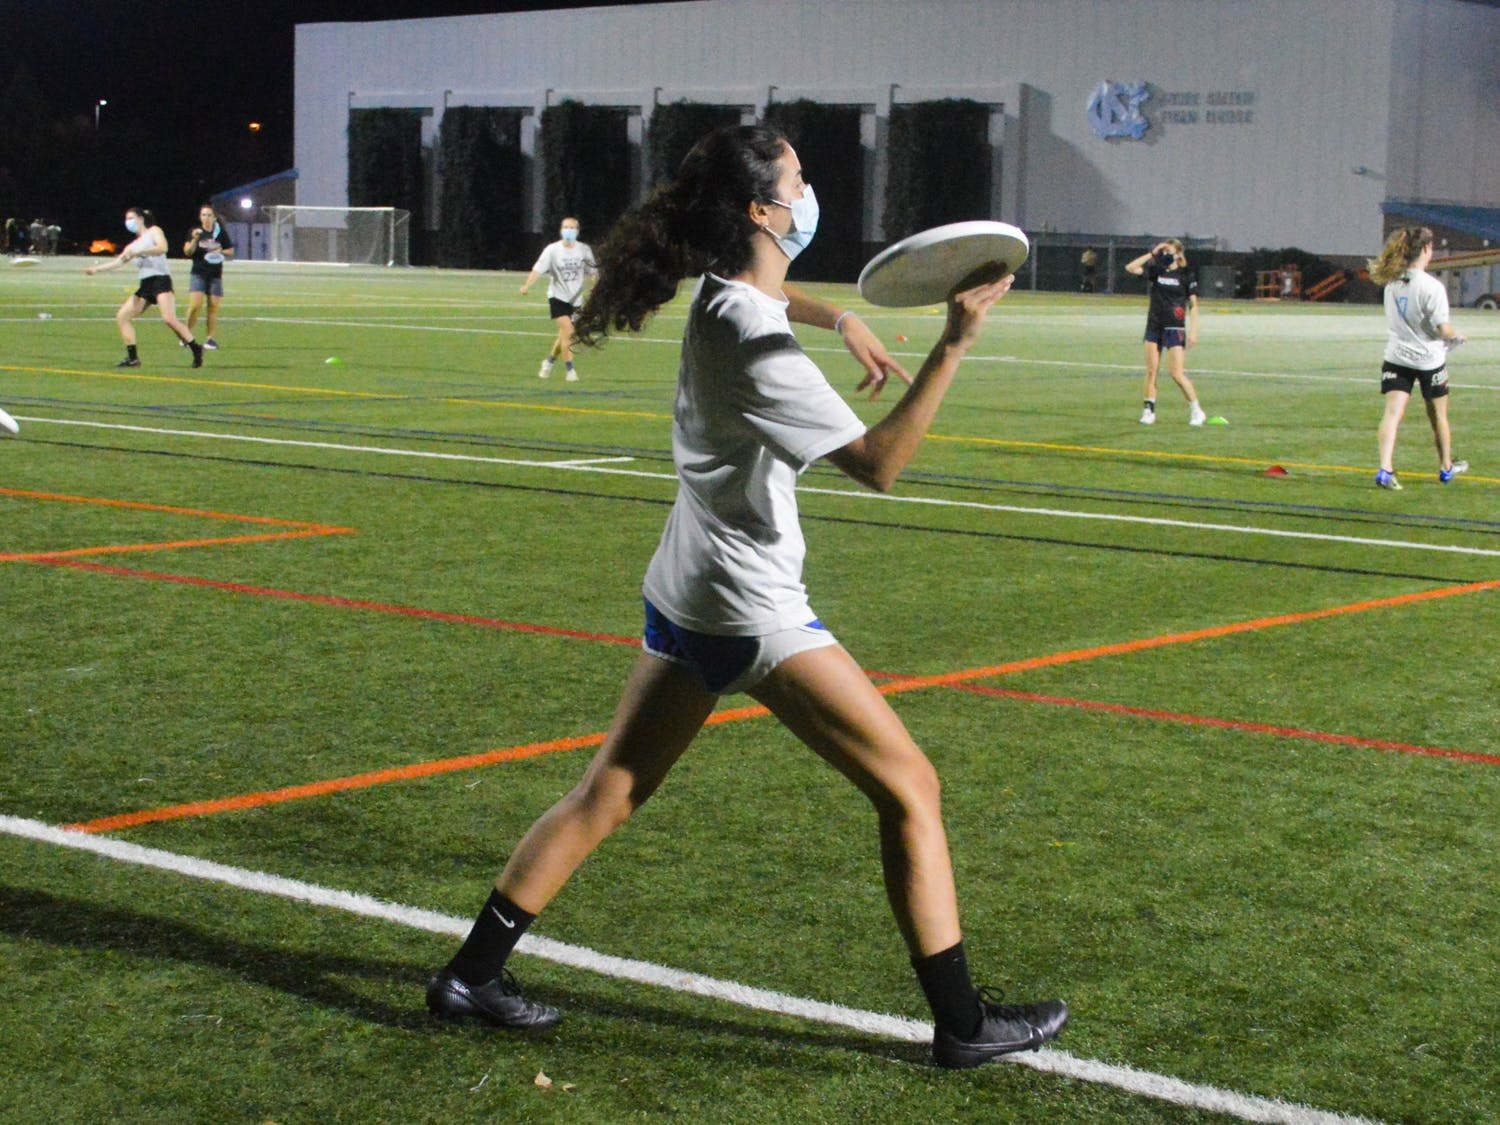 The Pleiades, a UNC Women's Club Ultimate Frisbee team began in-person practice again on Thursday Oct. 22, 2020 at Hooker Fields.